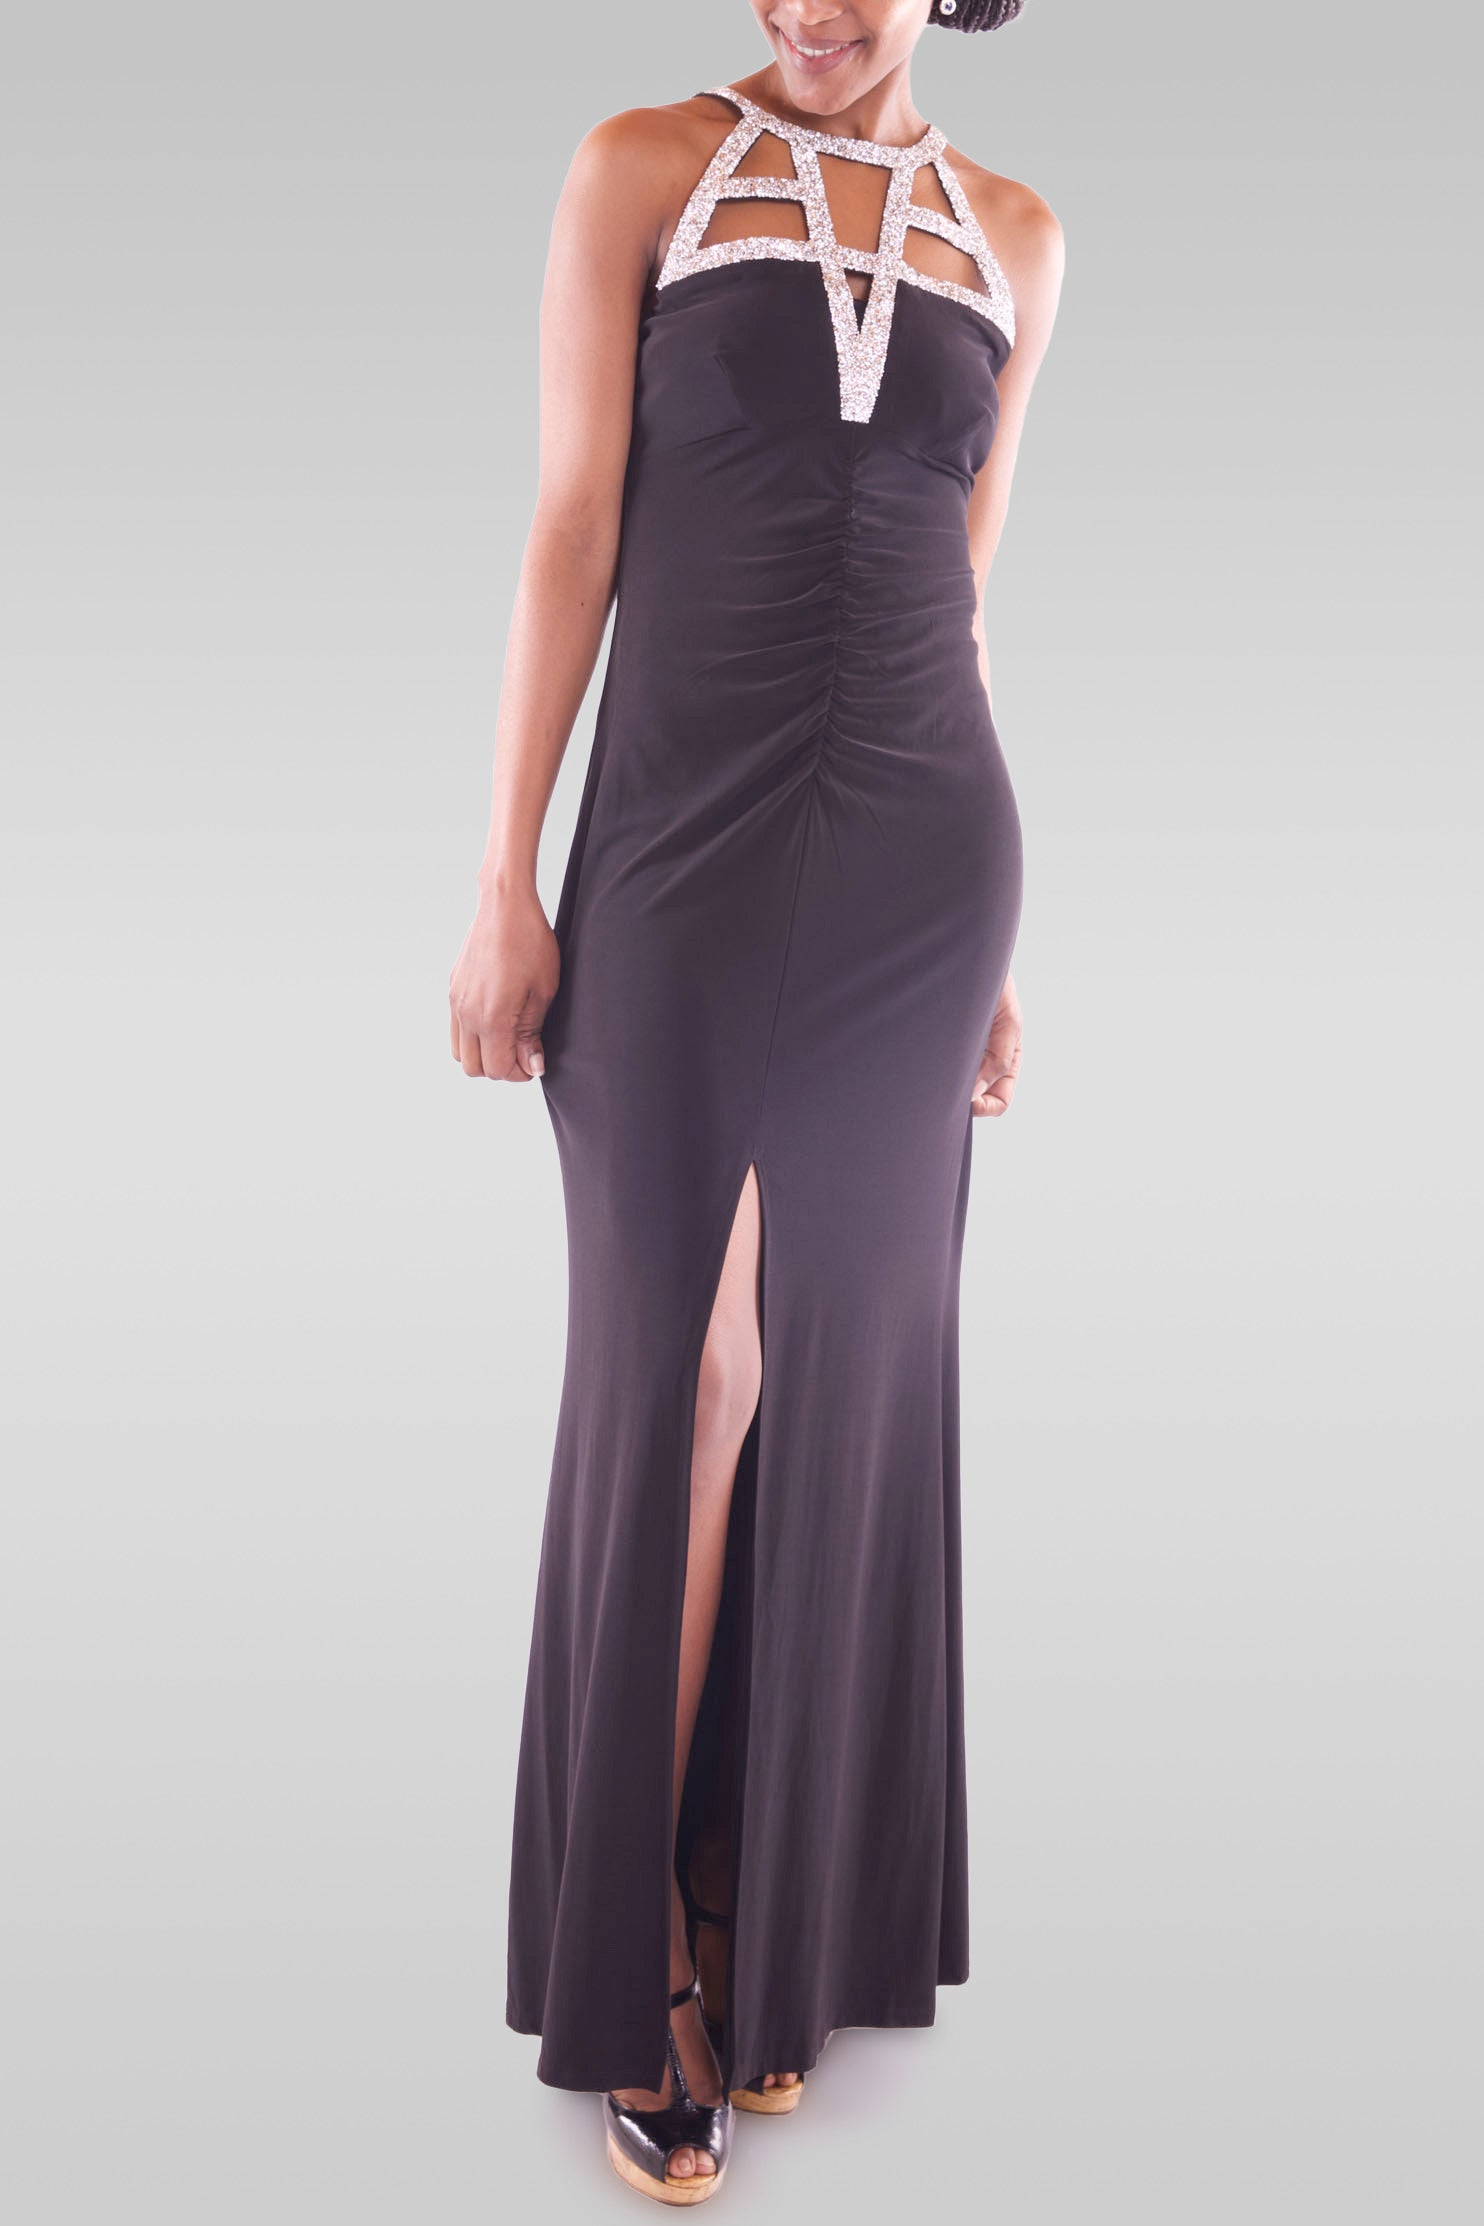 Women's Maxi Black Party Dress - Hillmarten